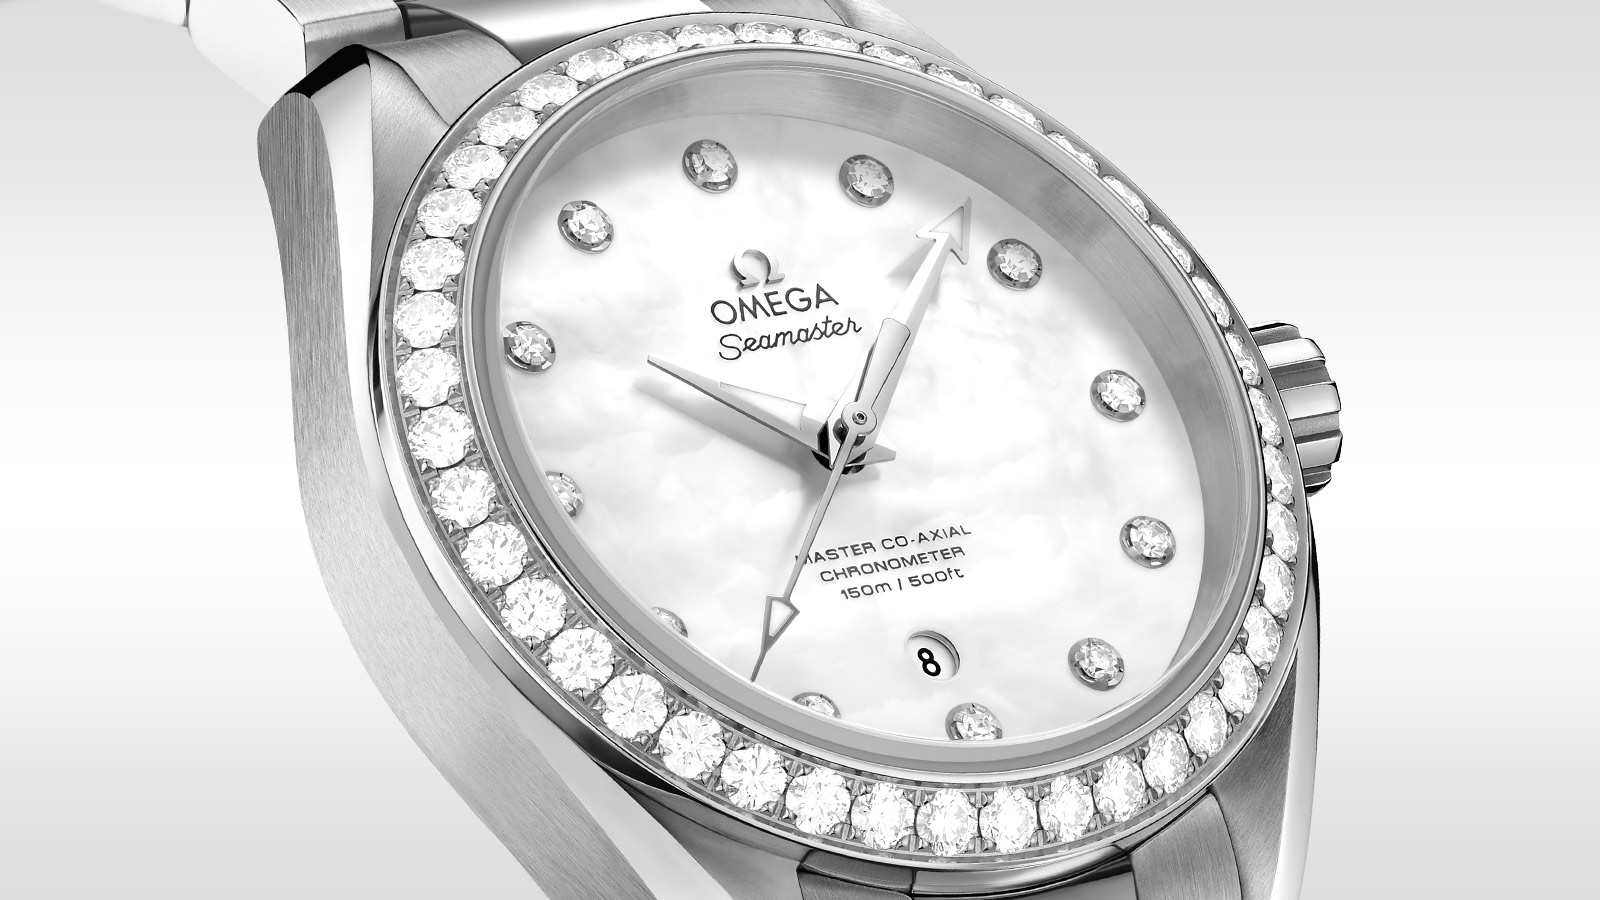 Seamaster Aqua Terra 150M Aqua Terra 150M Omega Master Co‑Axial 34 mm Donna - 231.15.34.20.55.002 - Visualizzare 1